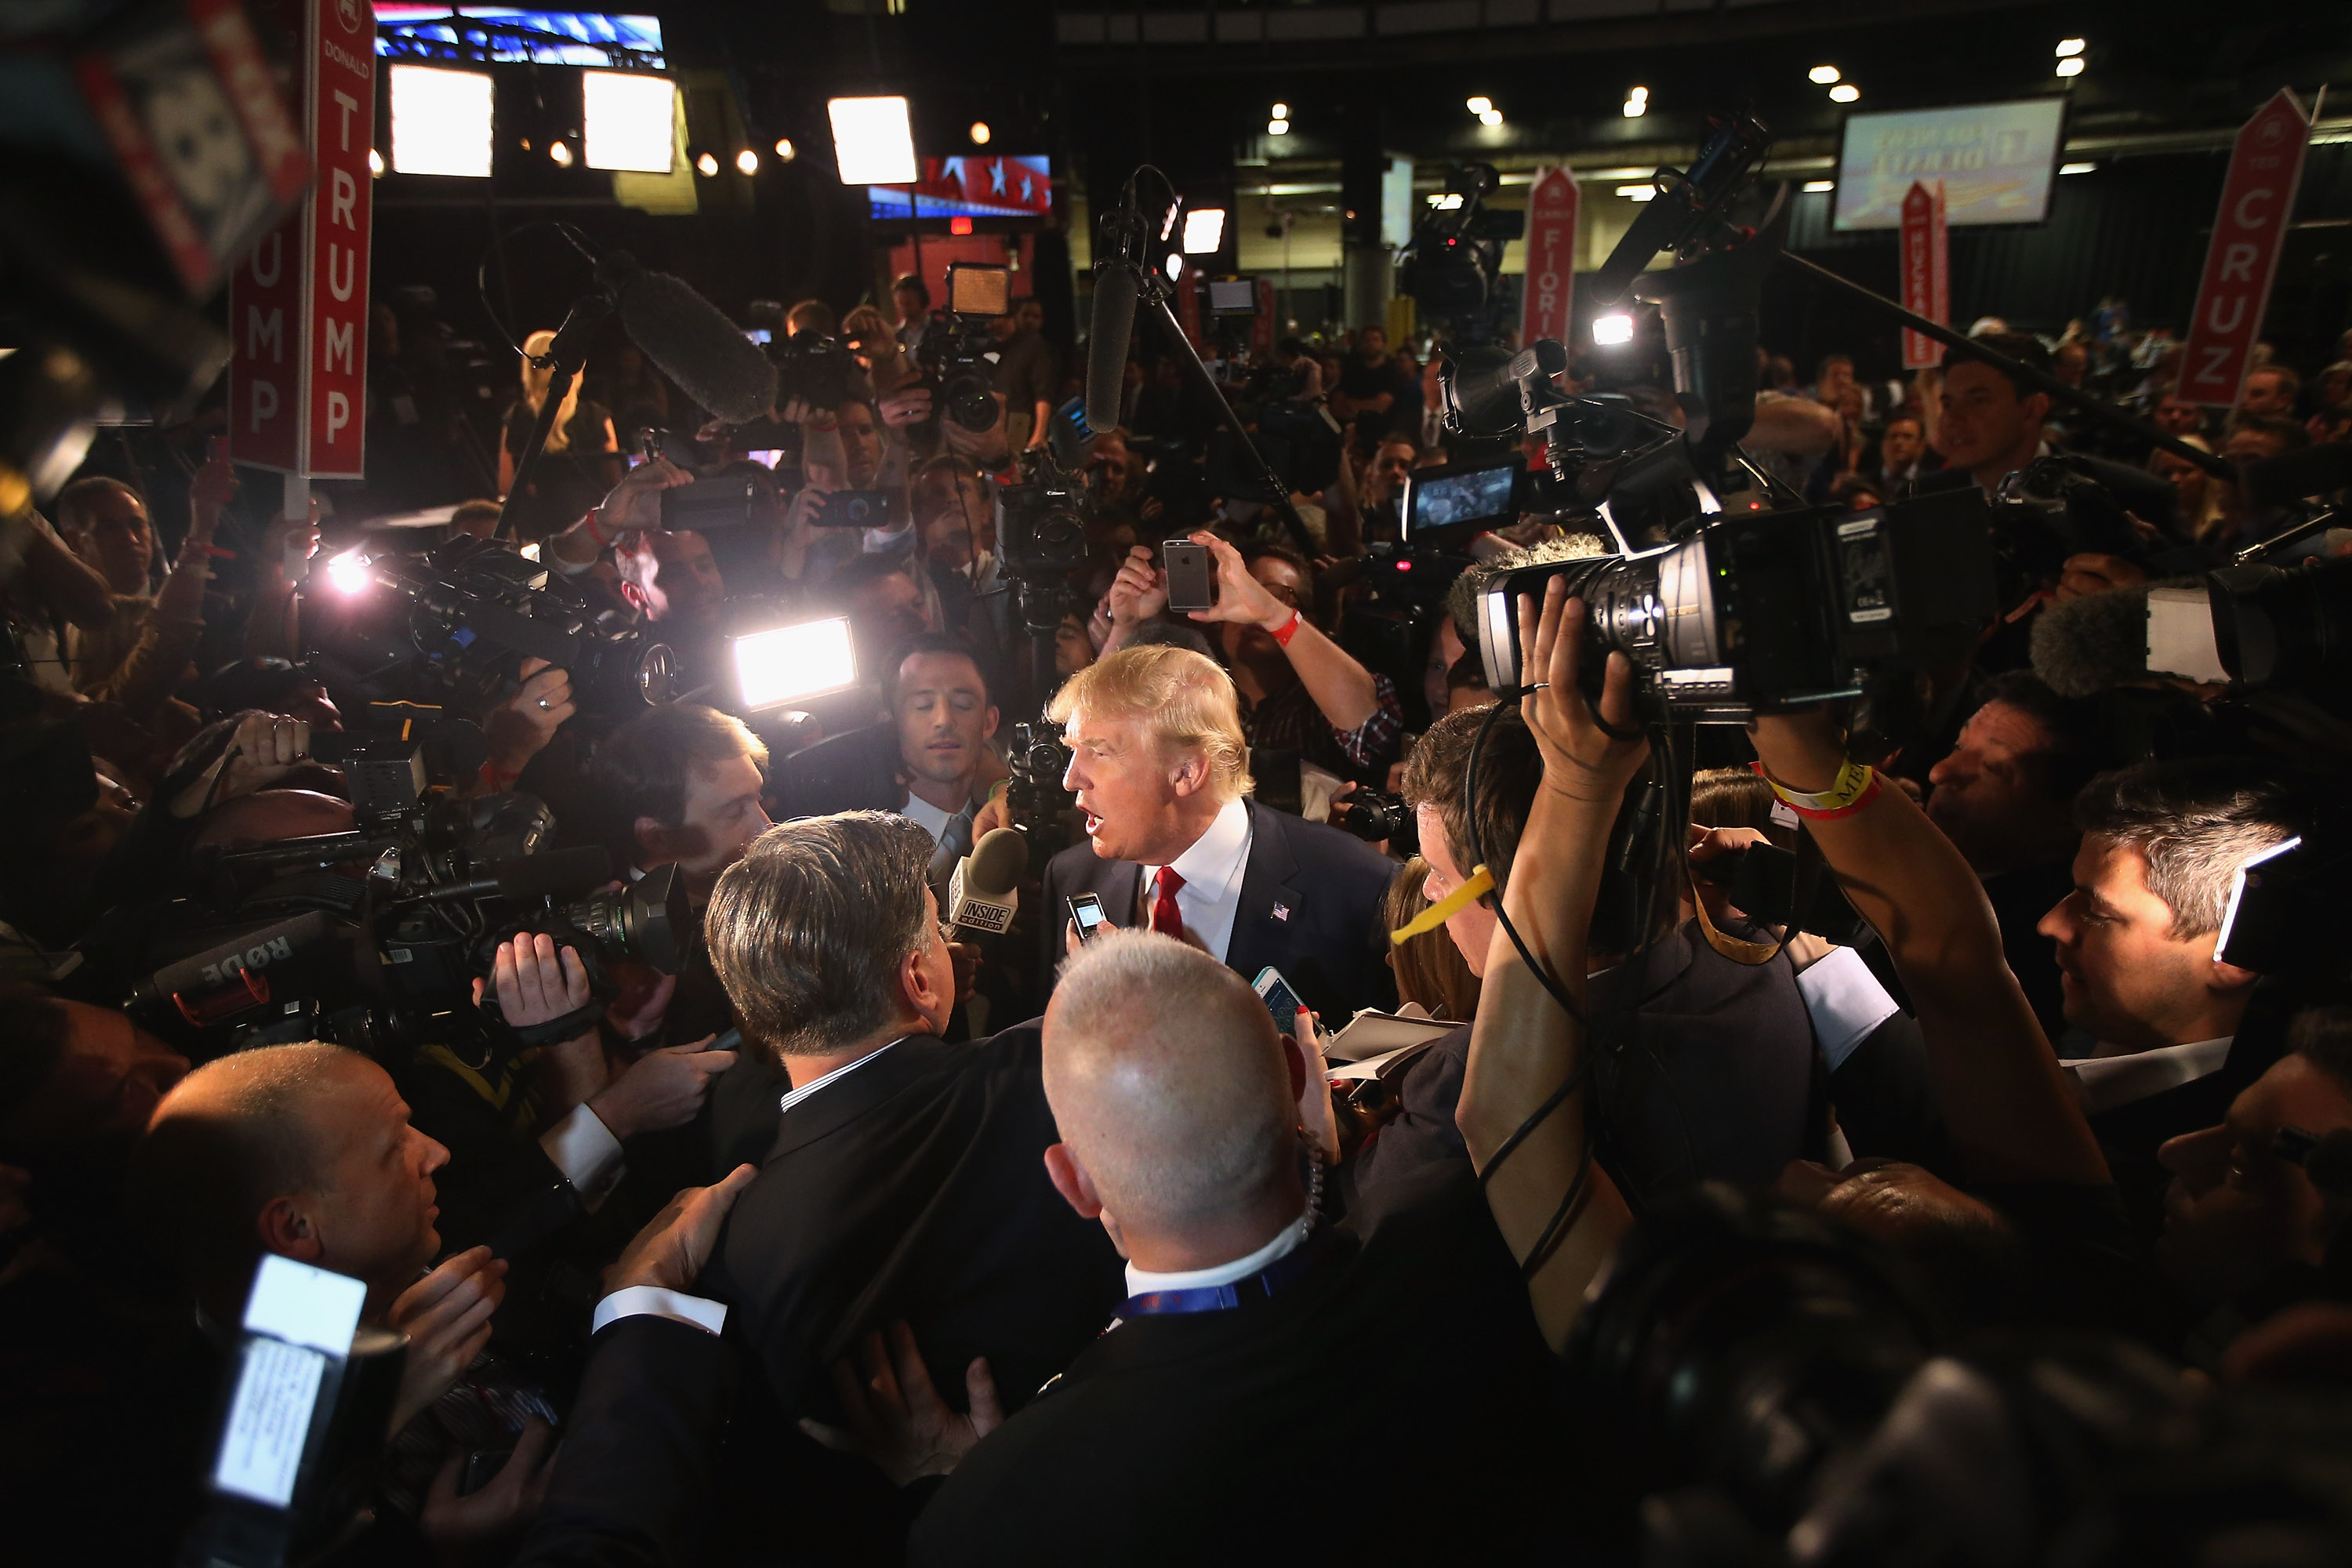 Republican presidential candidate Donald Trump (C) talks to reporters in the 'Spin Alley' after the first prime-time presidential debate hosted by FOX News and Facebook at the Quicken Loans Arena on Aug. 6, 2015 in Cleveland.